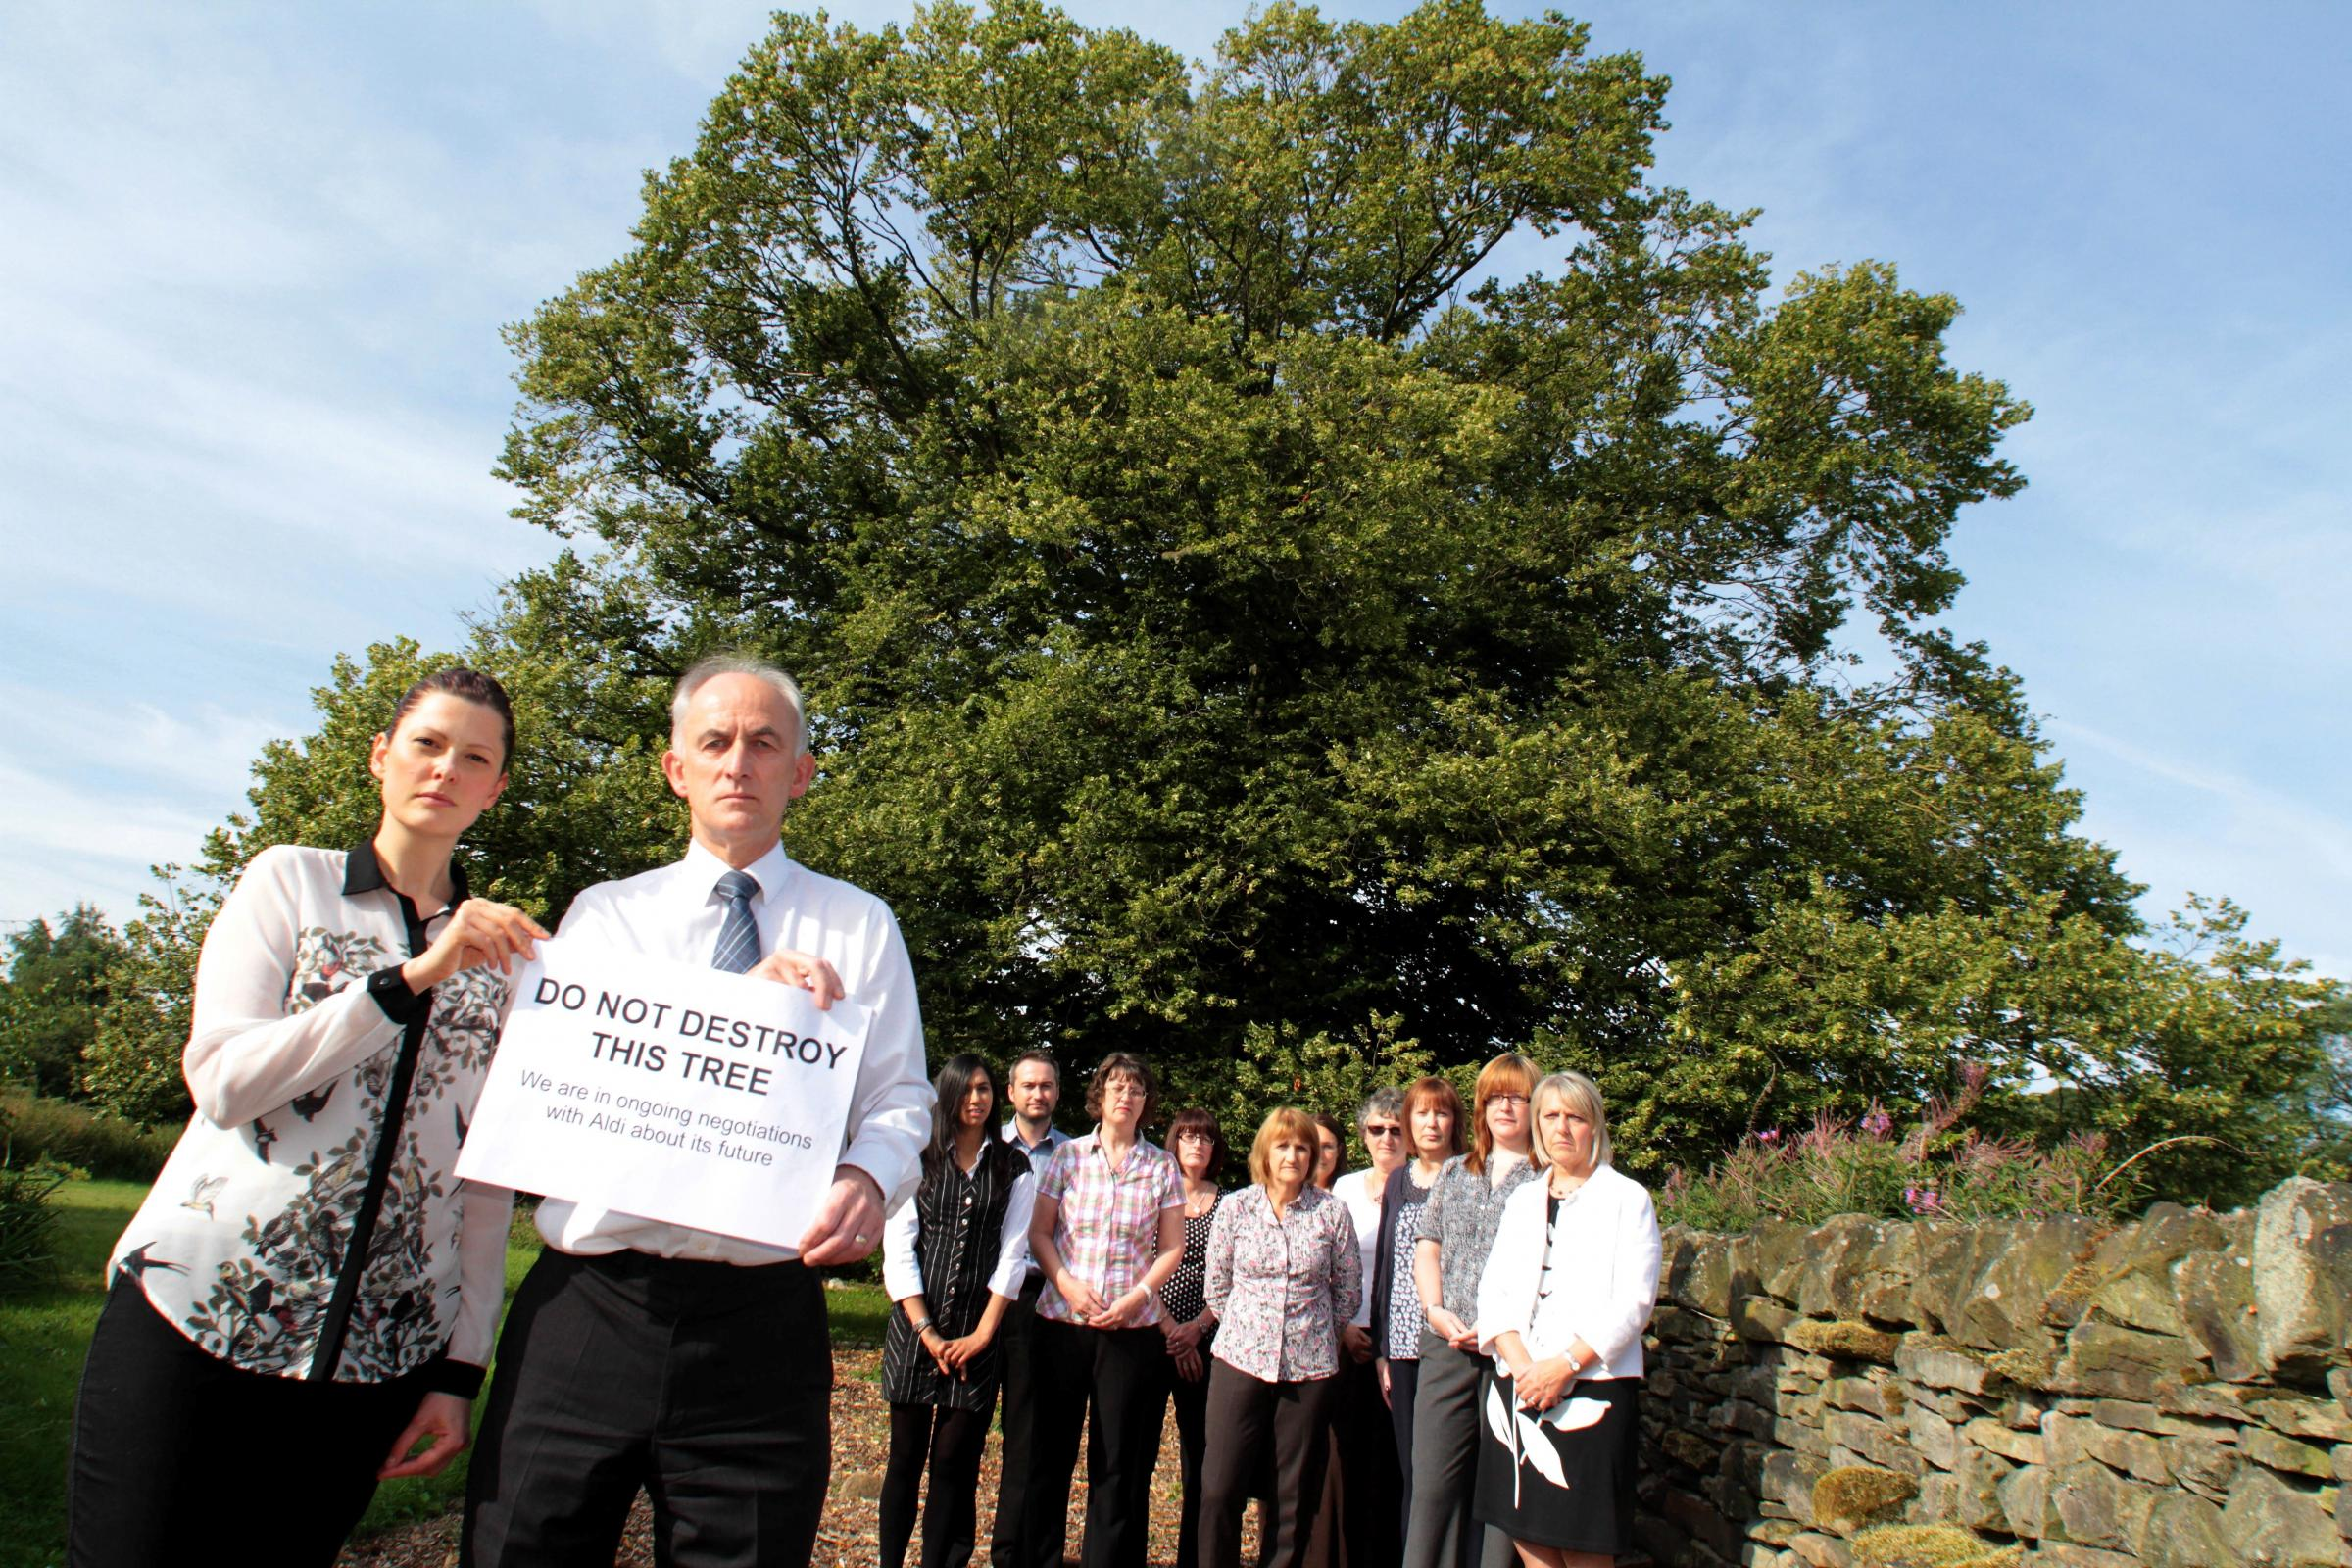 Eco workers battle to save historic tree on supermarket development site